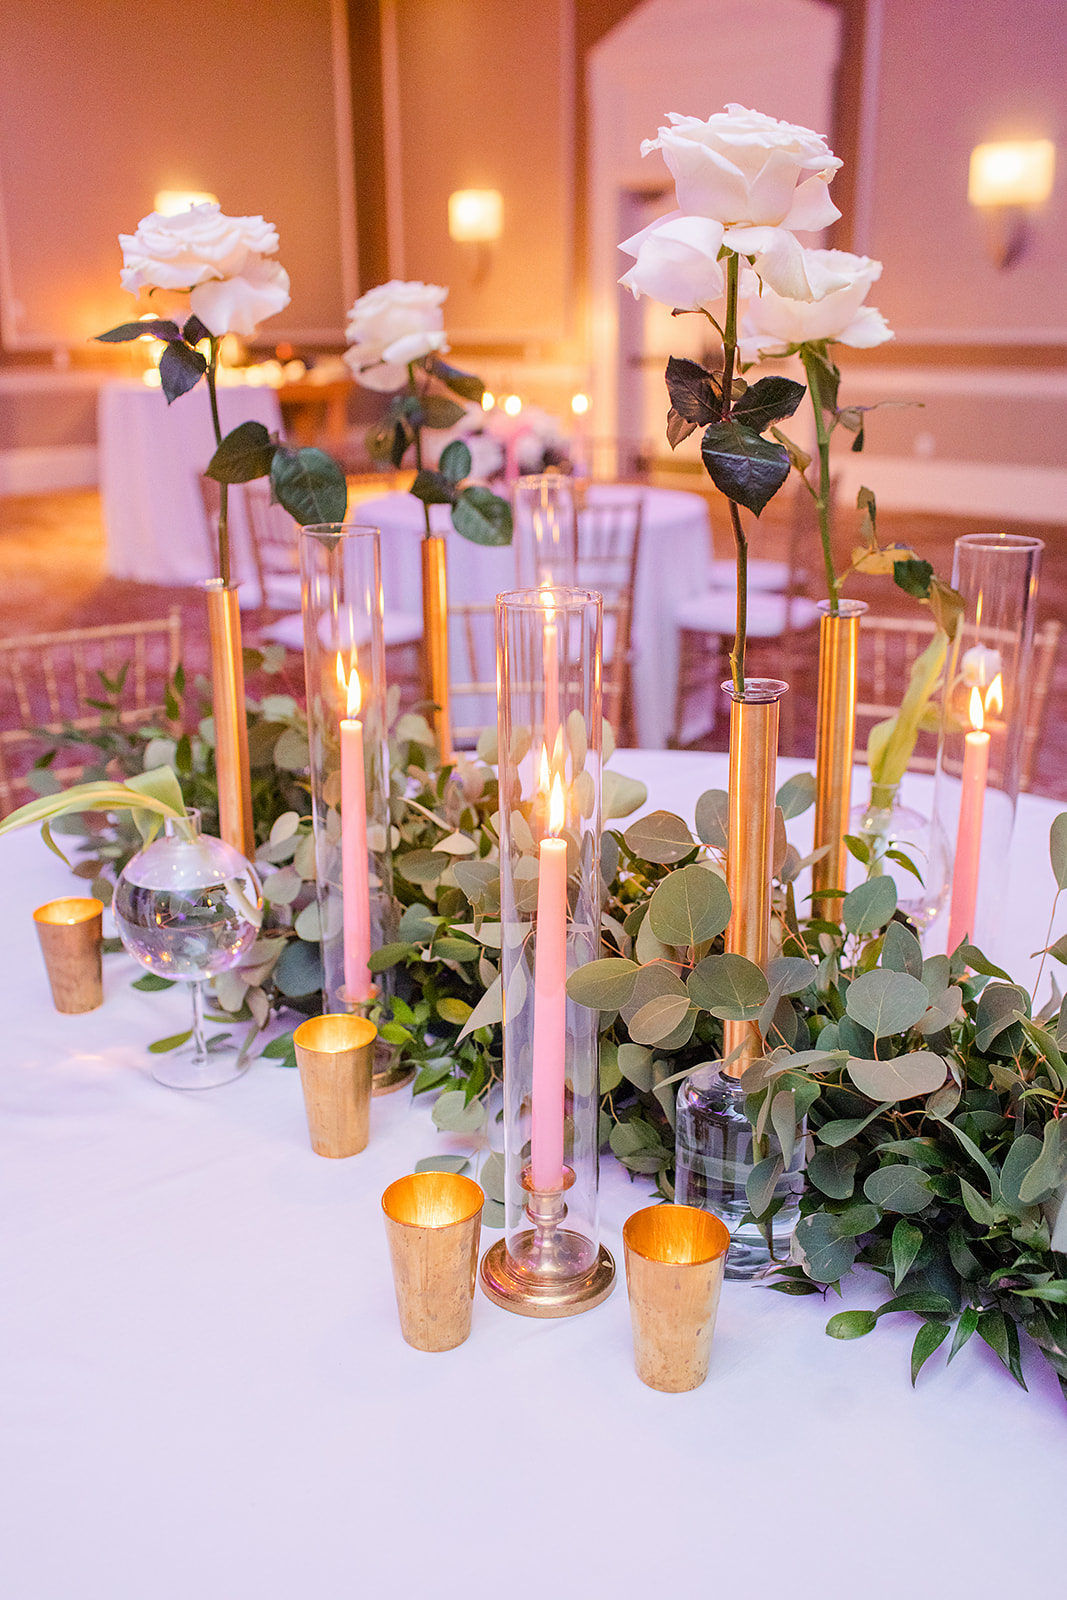 Blush-Black-Tie-Wedding-at-the-Grand-Hotel-in-Point-Clear-Alabama-Anna-Filly-Photography-Cross-Wedding-Reception-32.jpg